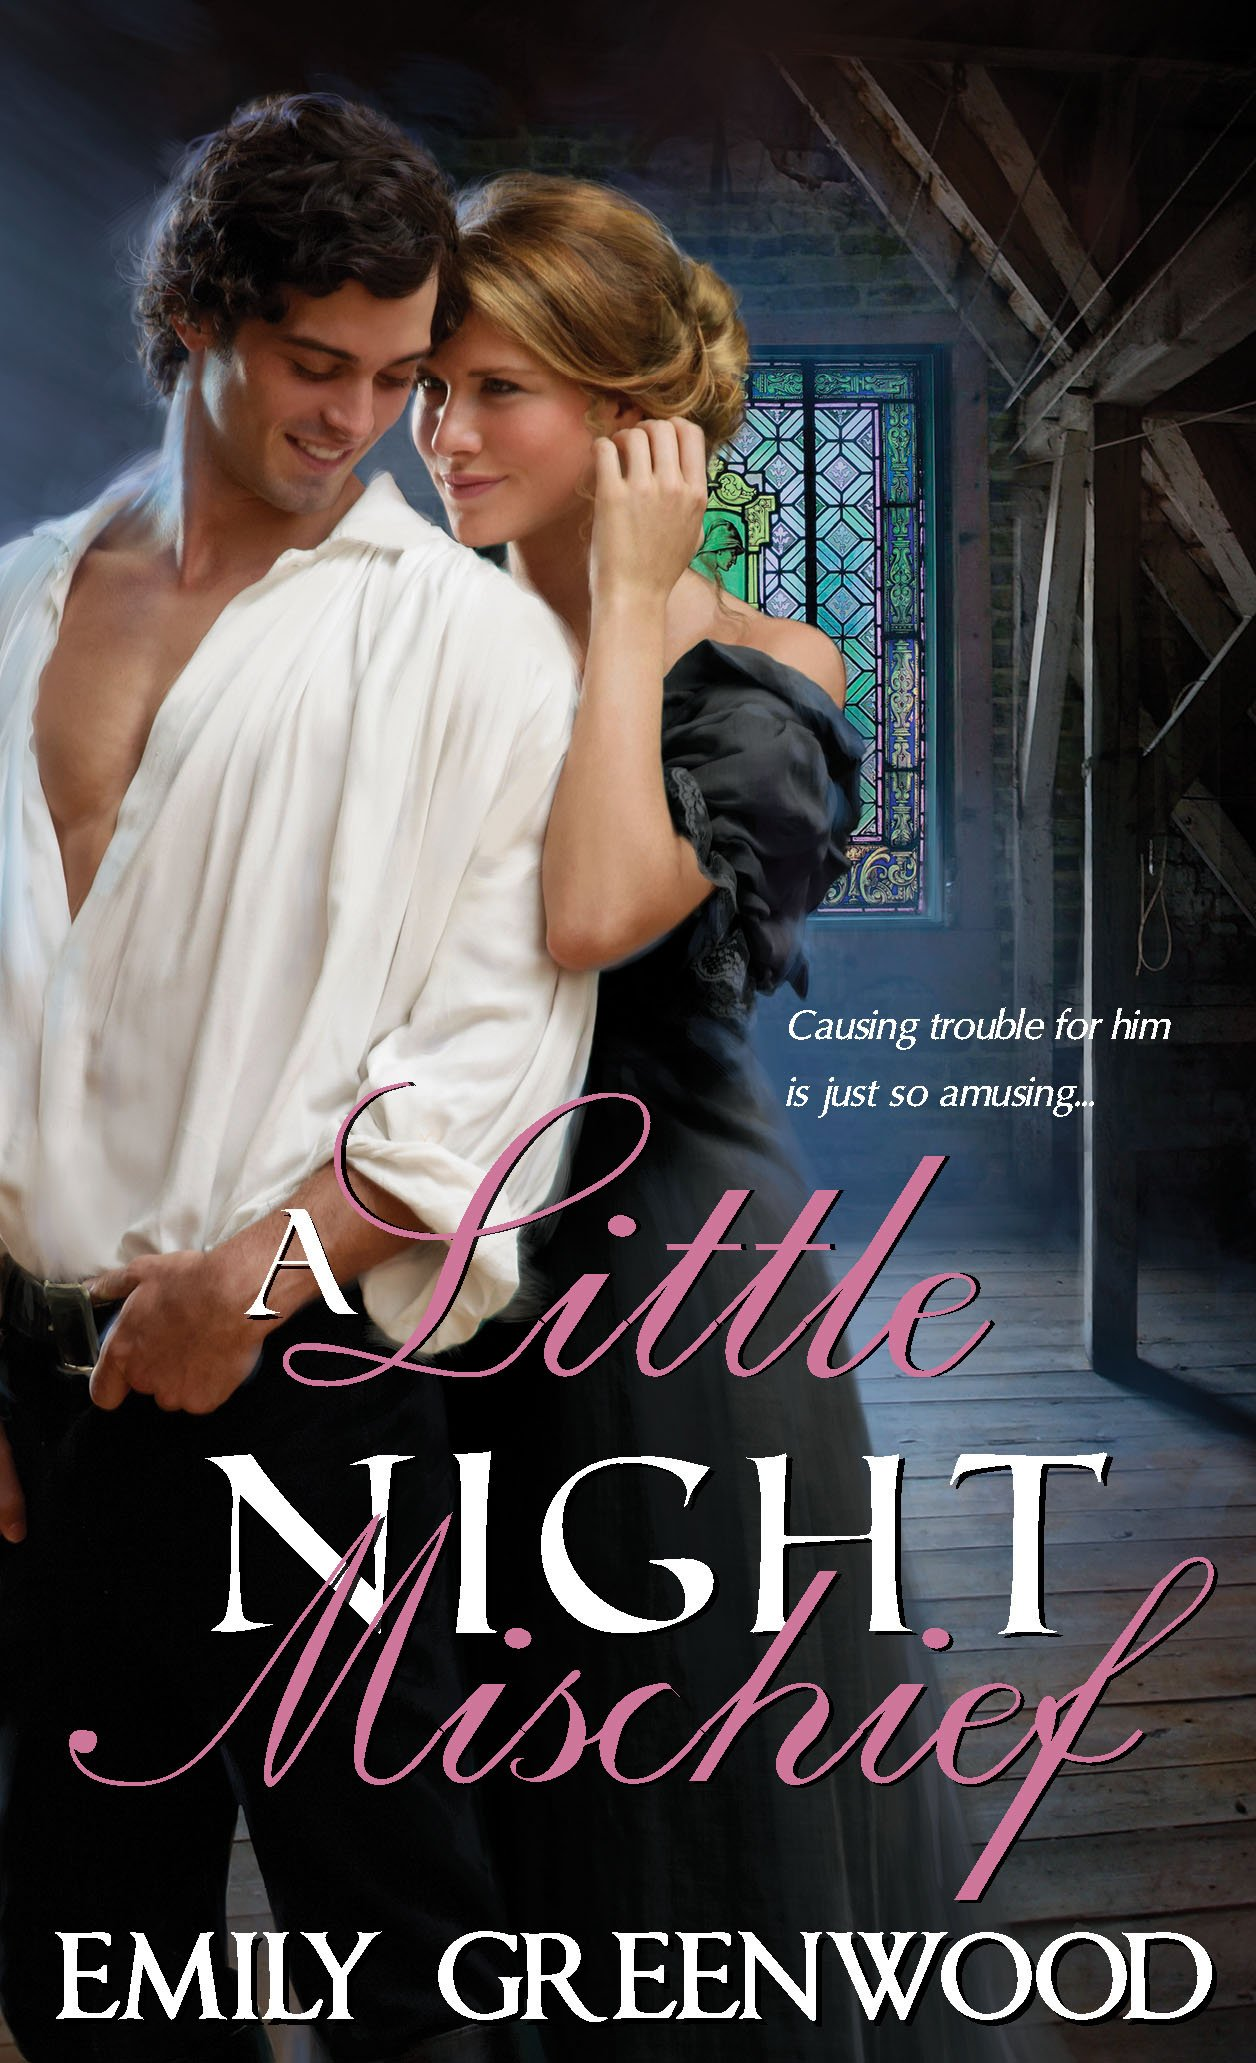 A Little Night Mischief (Regency Mischief)